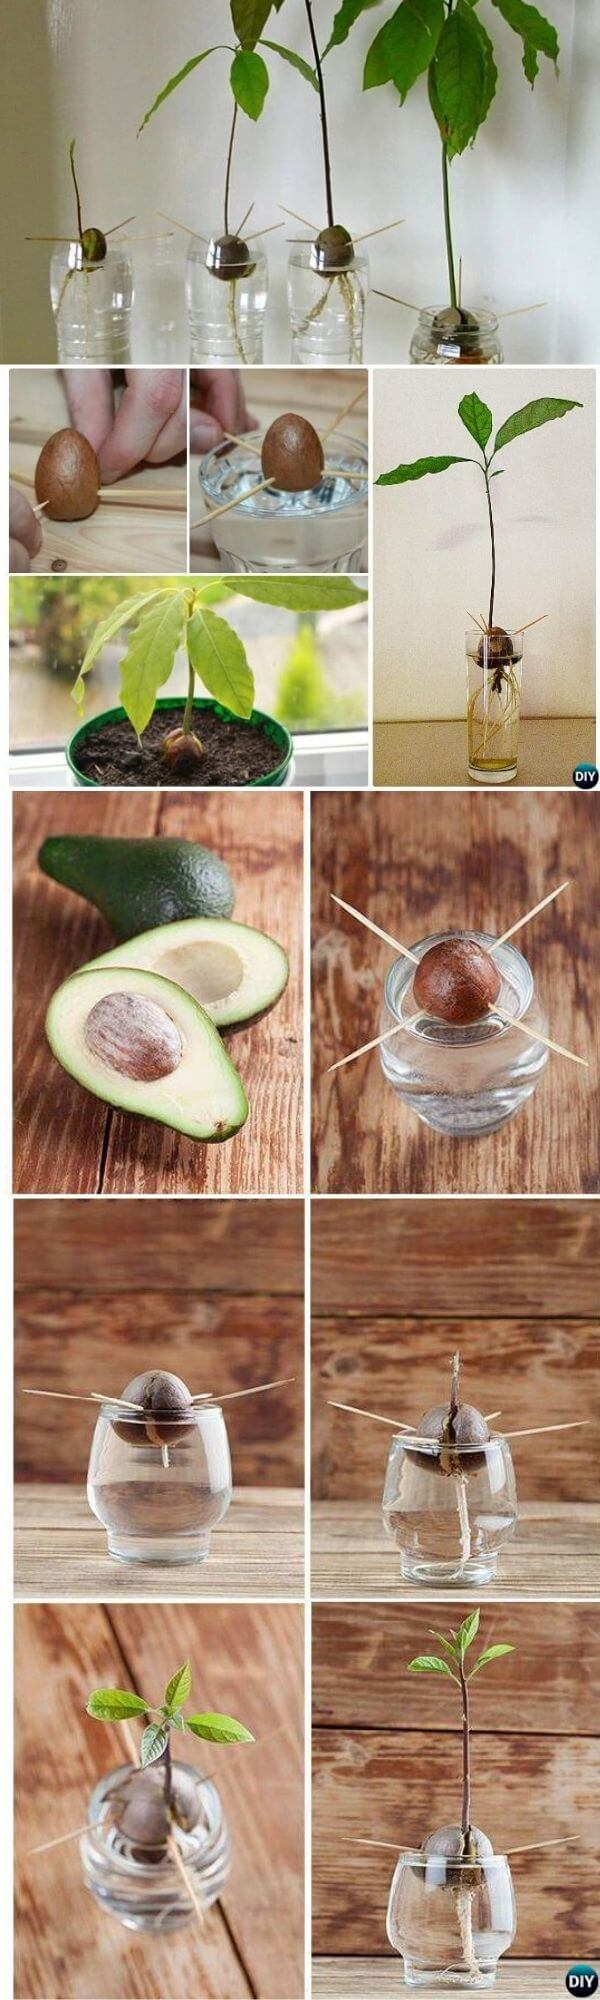 How to grow avocado from kitchen scraps